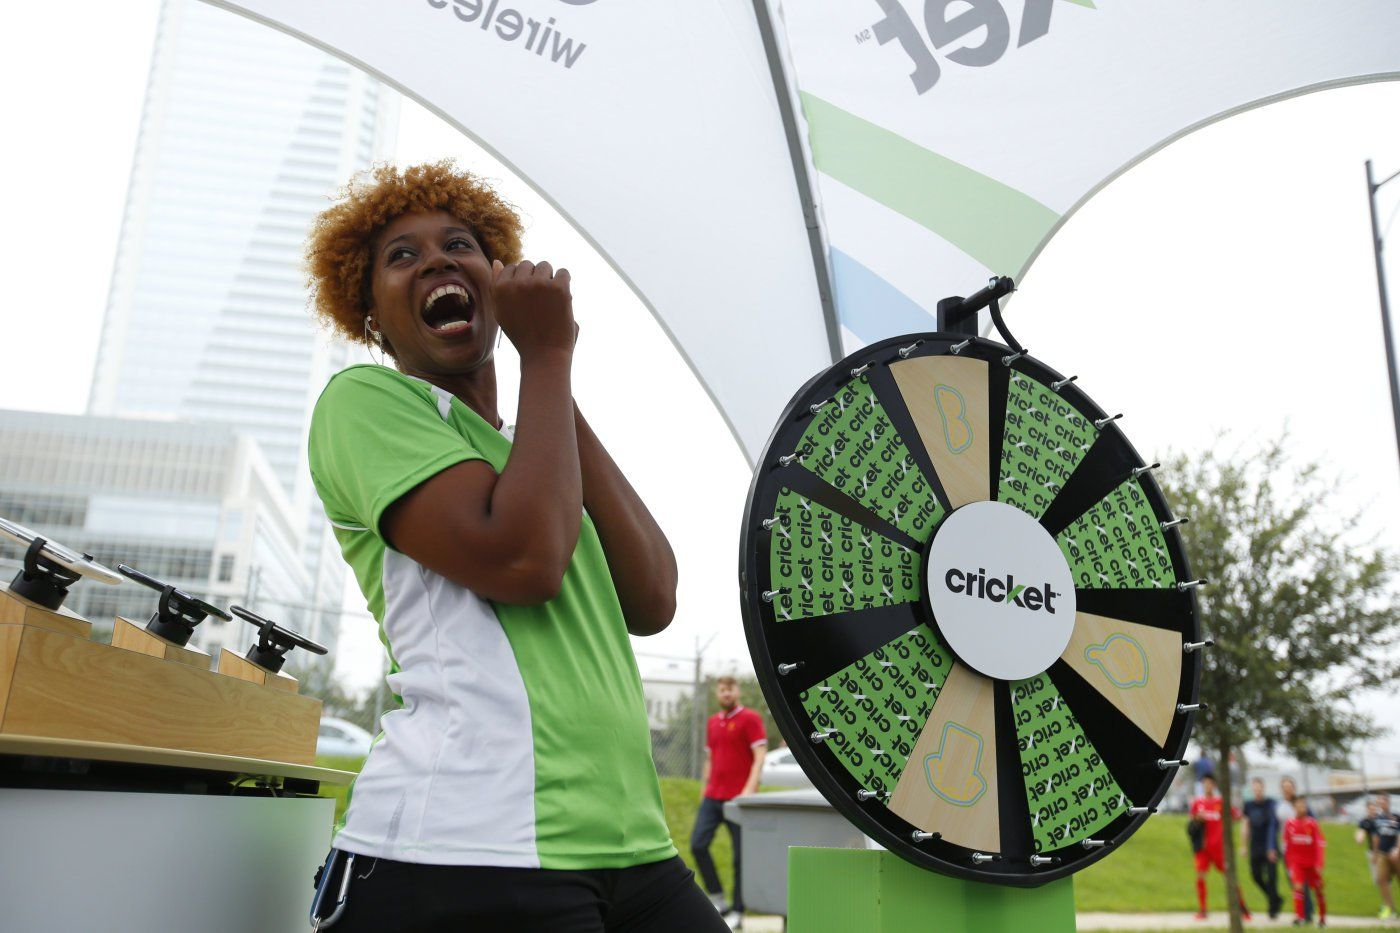 Cricket wireless has an unlimited plan for 65 a month